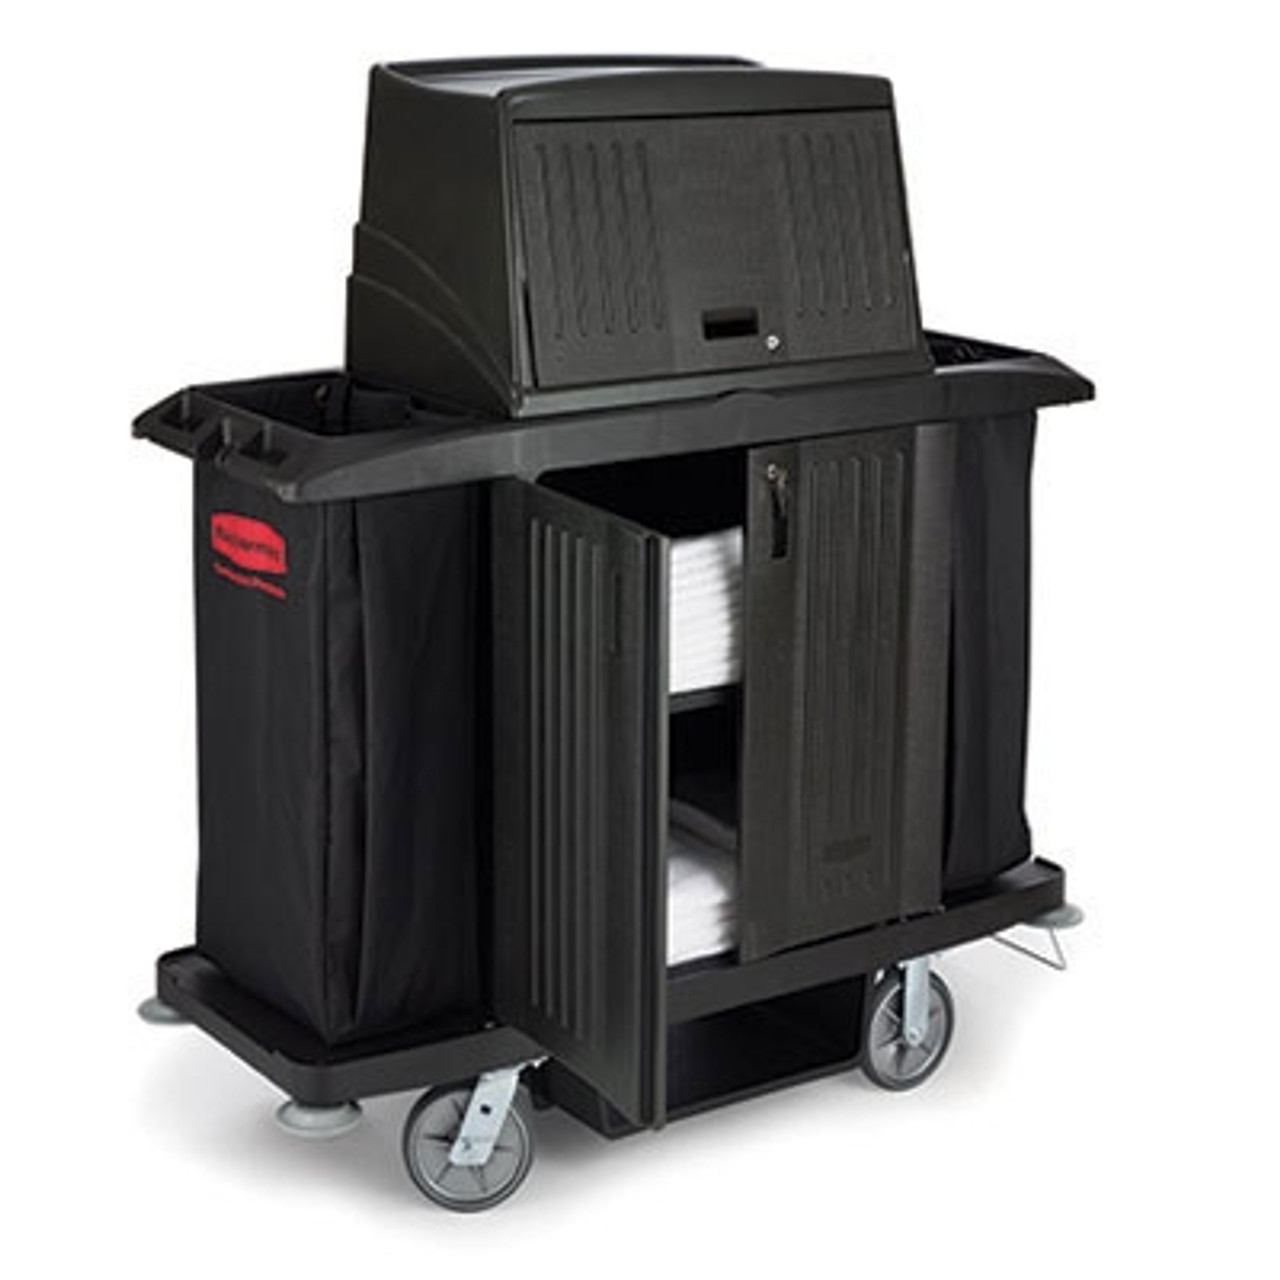 Rubbermaid Commercial Full Size Housekeeping Cart with Doors, 22w x 60d x 67 1/2h, Black